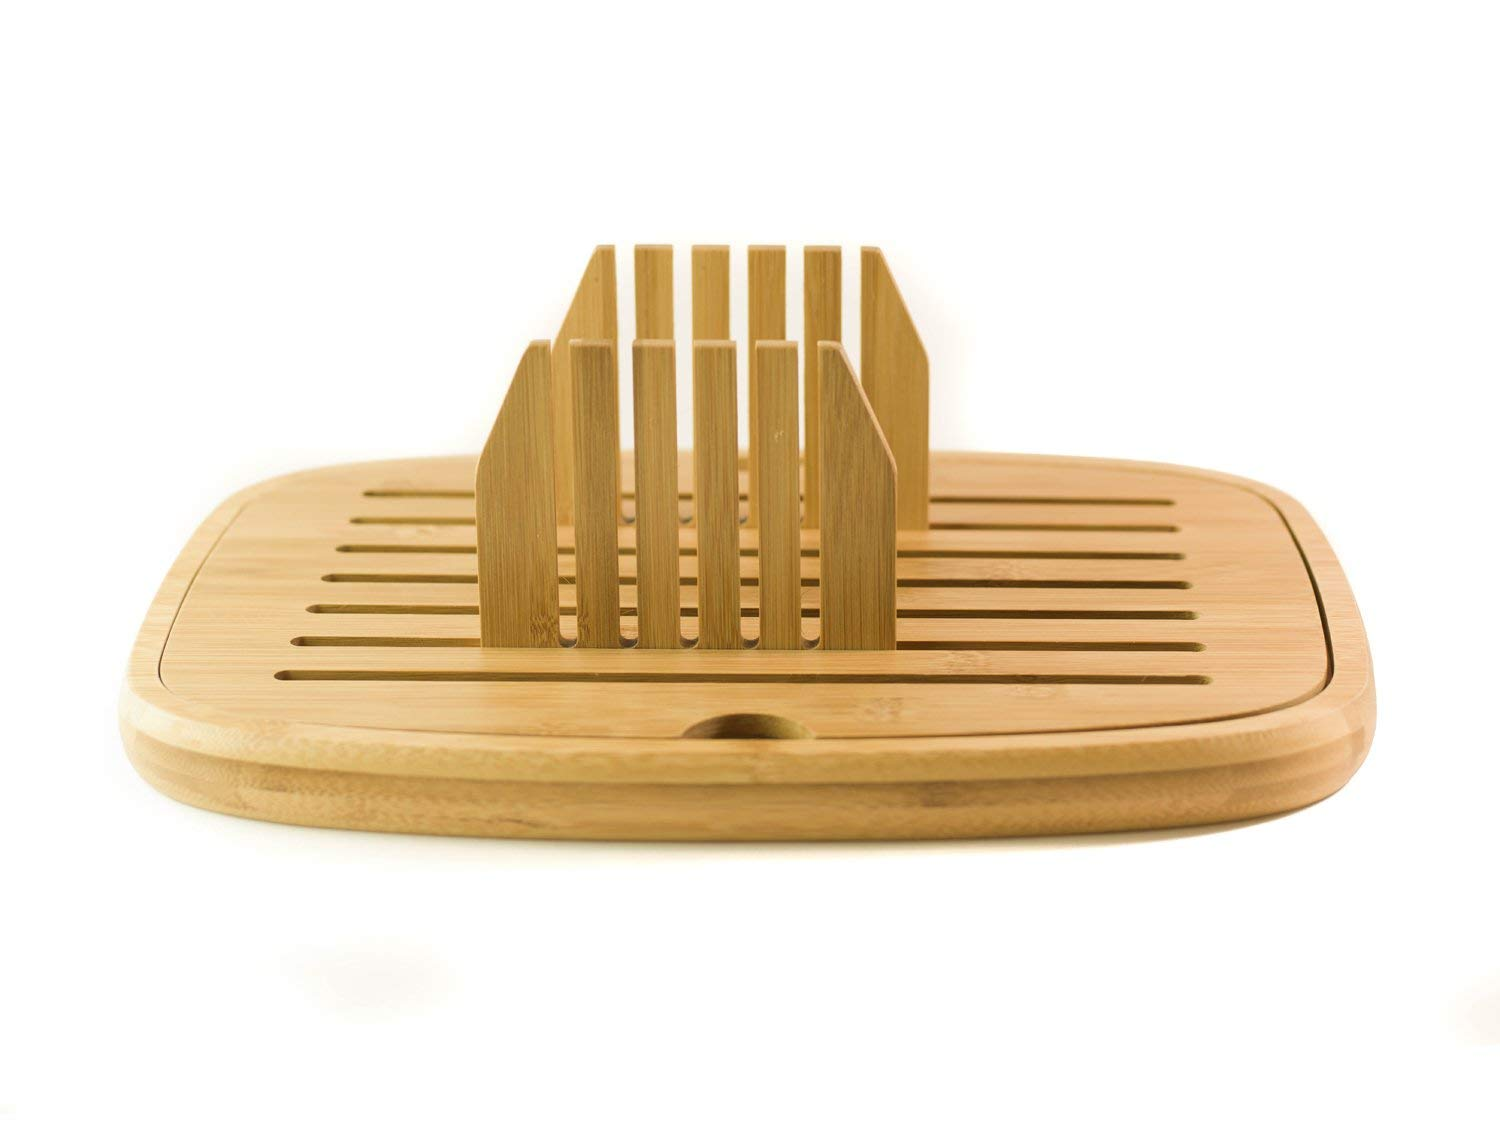 Bread Slicer - Bread Cutter - Foldable Bread Slicer | Bamboo Wood | Easy Storage